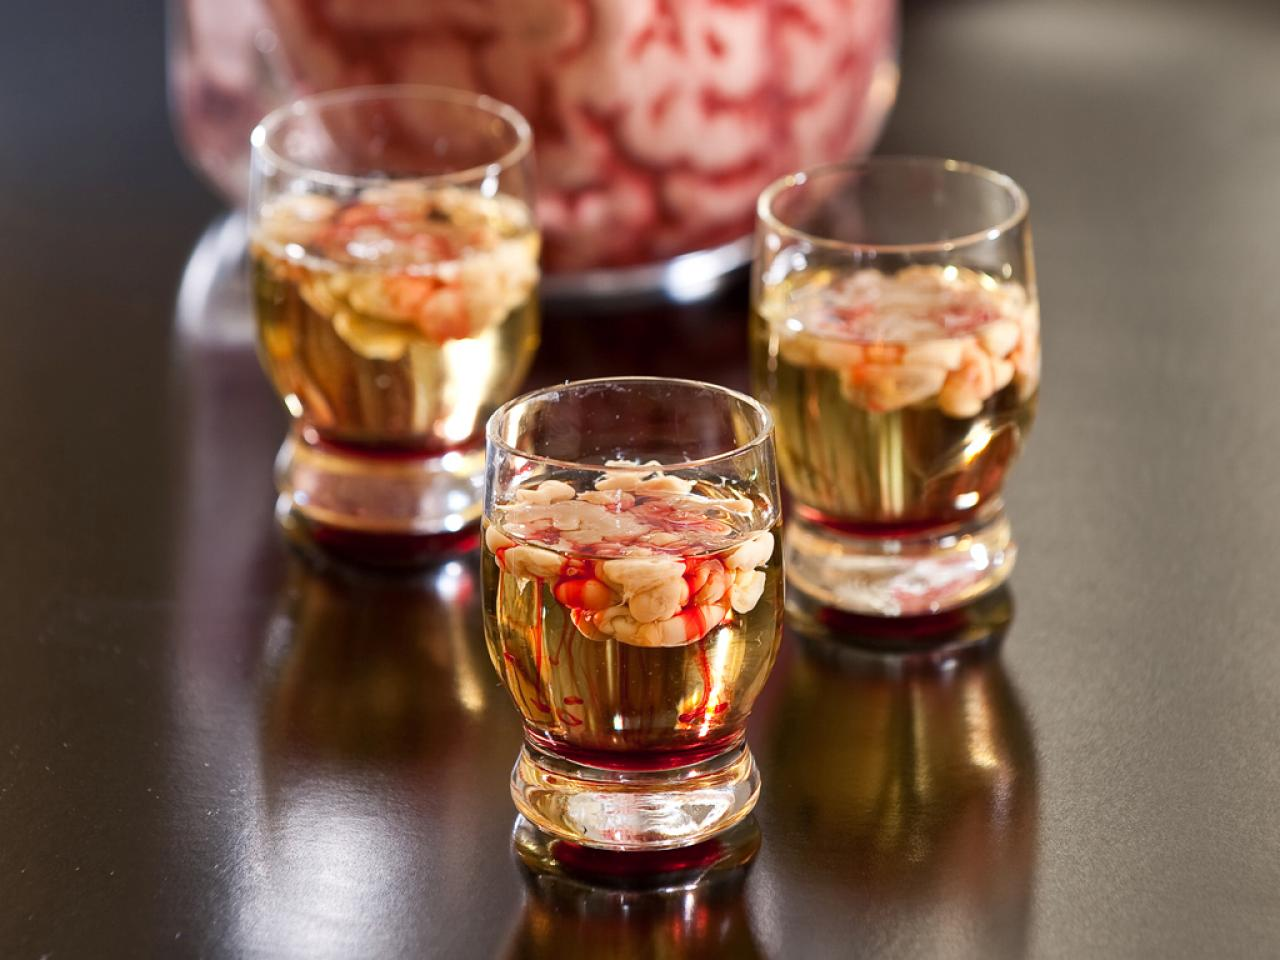 original_FL-Halloween-Cocktail-Bloody-Brain_s4x3.jpg.rend.hgtvcom.1280.960